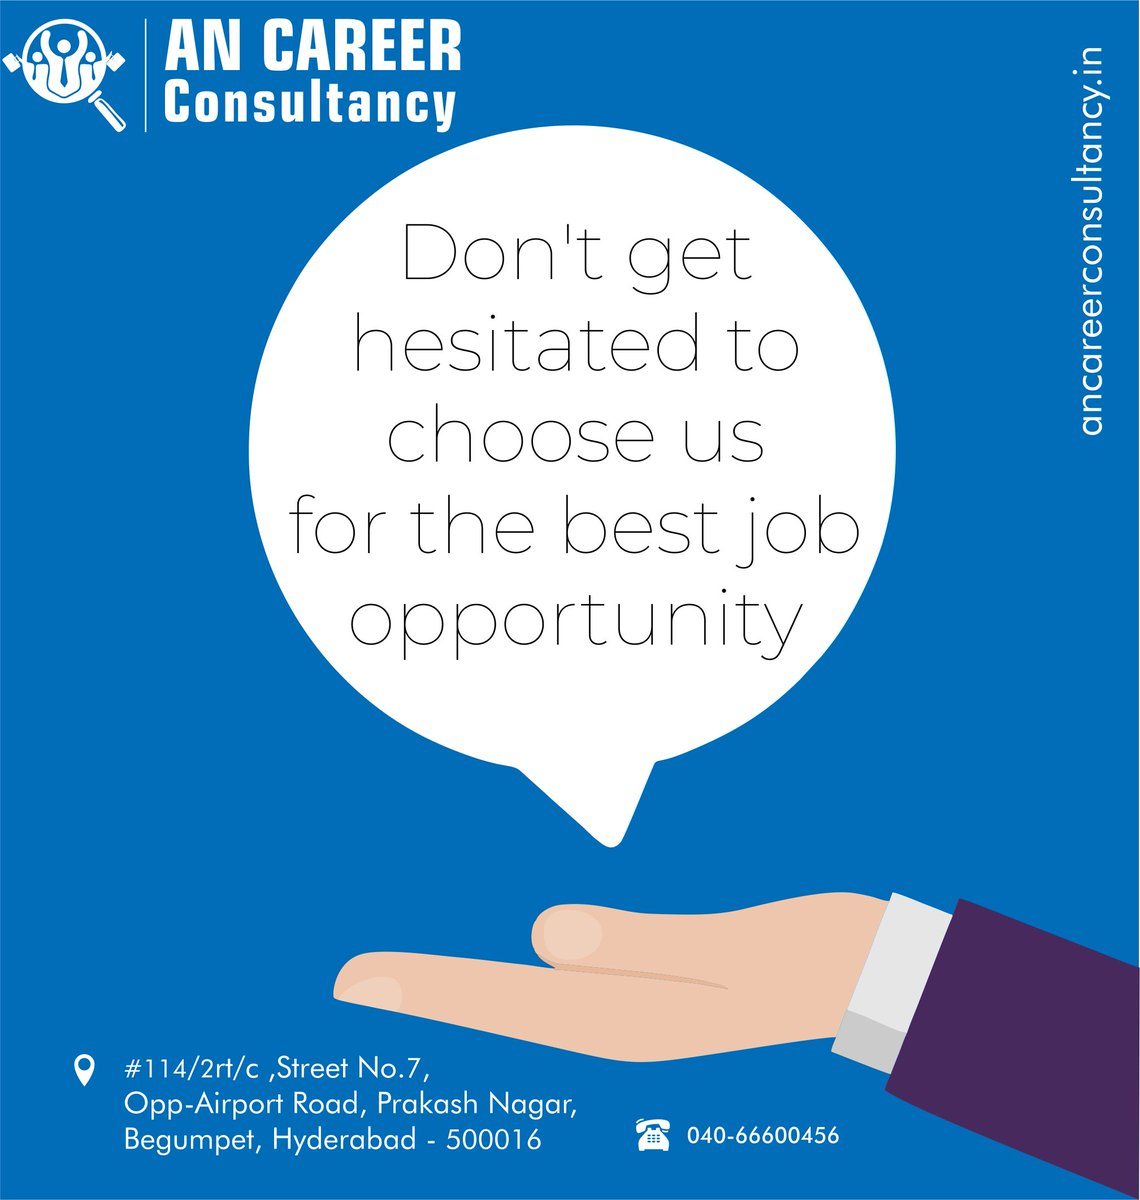 An Career Consultancy On Twitter Peoples Career Has Professionals In Its Ranks Who Have Versatile Qualifications And Experience To Suggest Right Career Options 91 95425 69603 Careerconsultancy Jobs Consultancy Careerjobs Freshersjobs